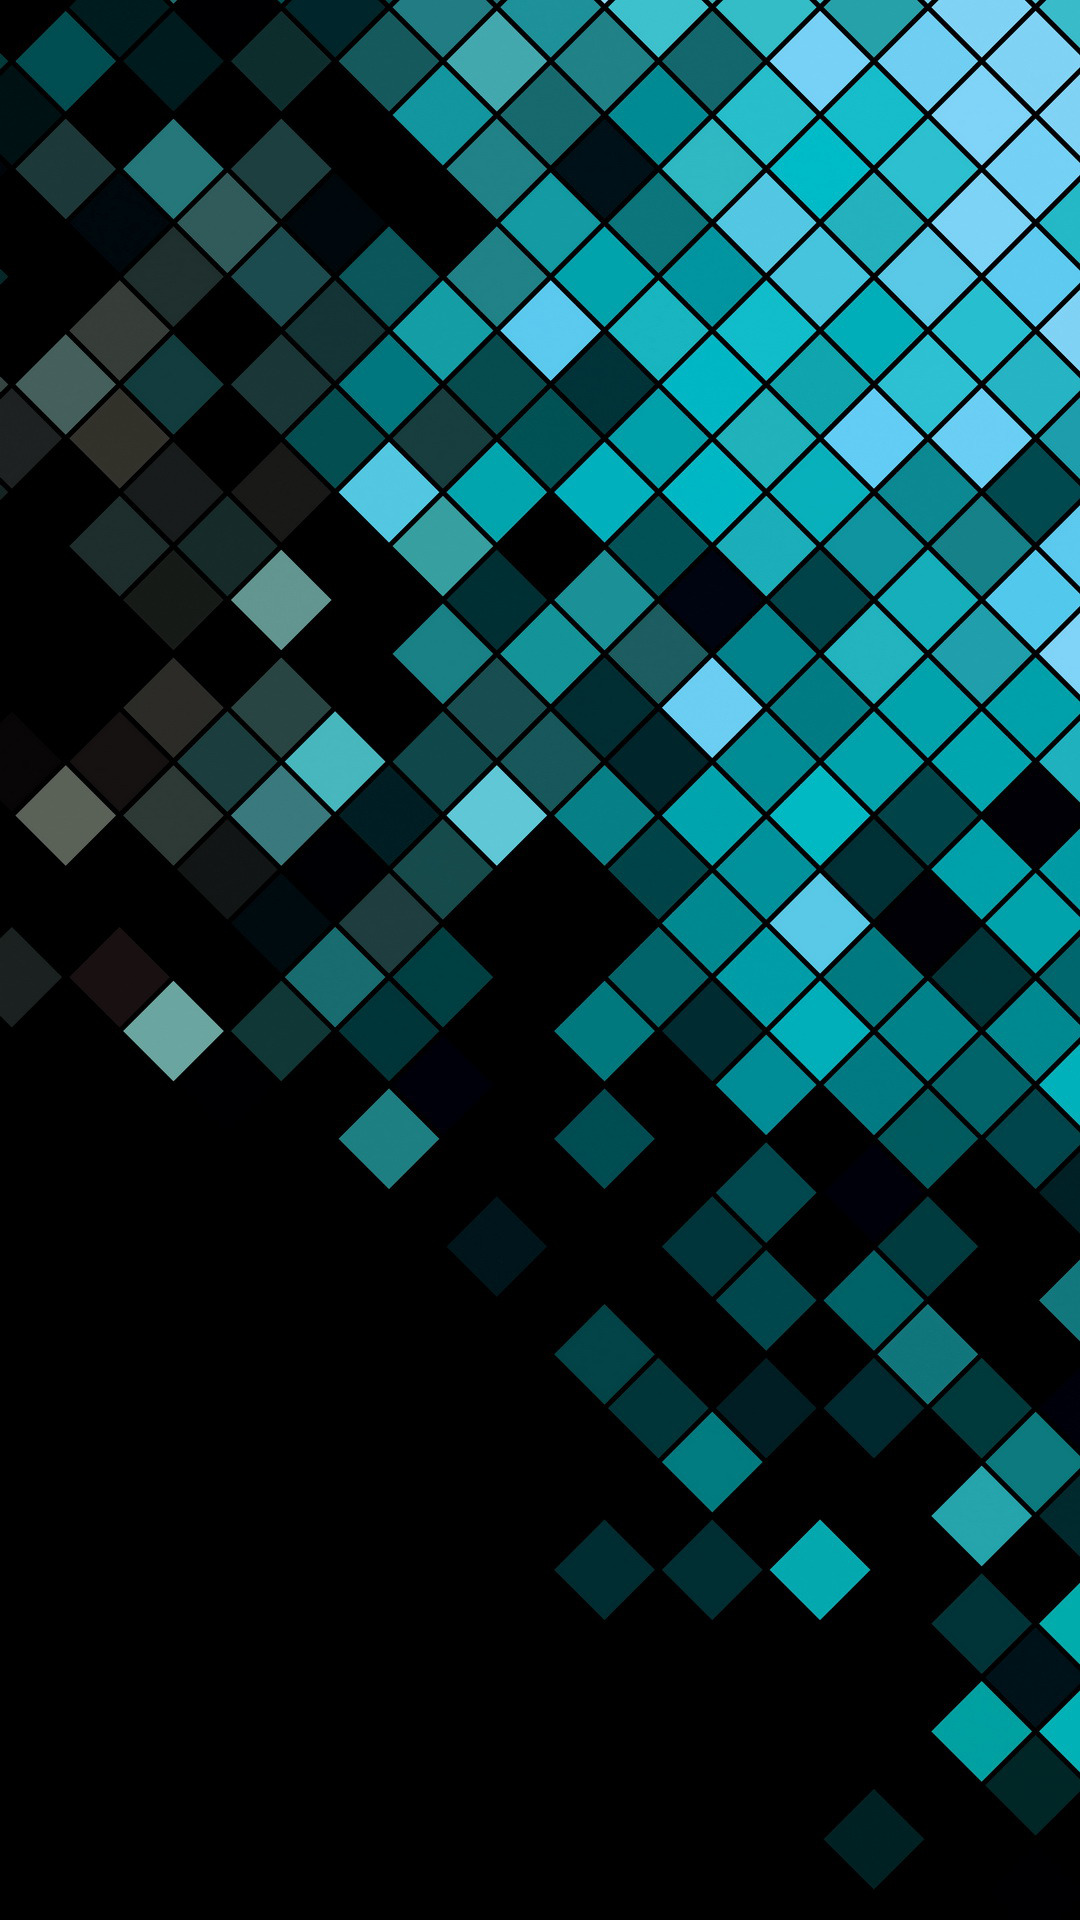 Free Download Mosaic Iphone 6 Plus High Resolution